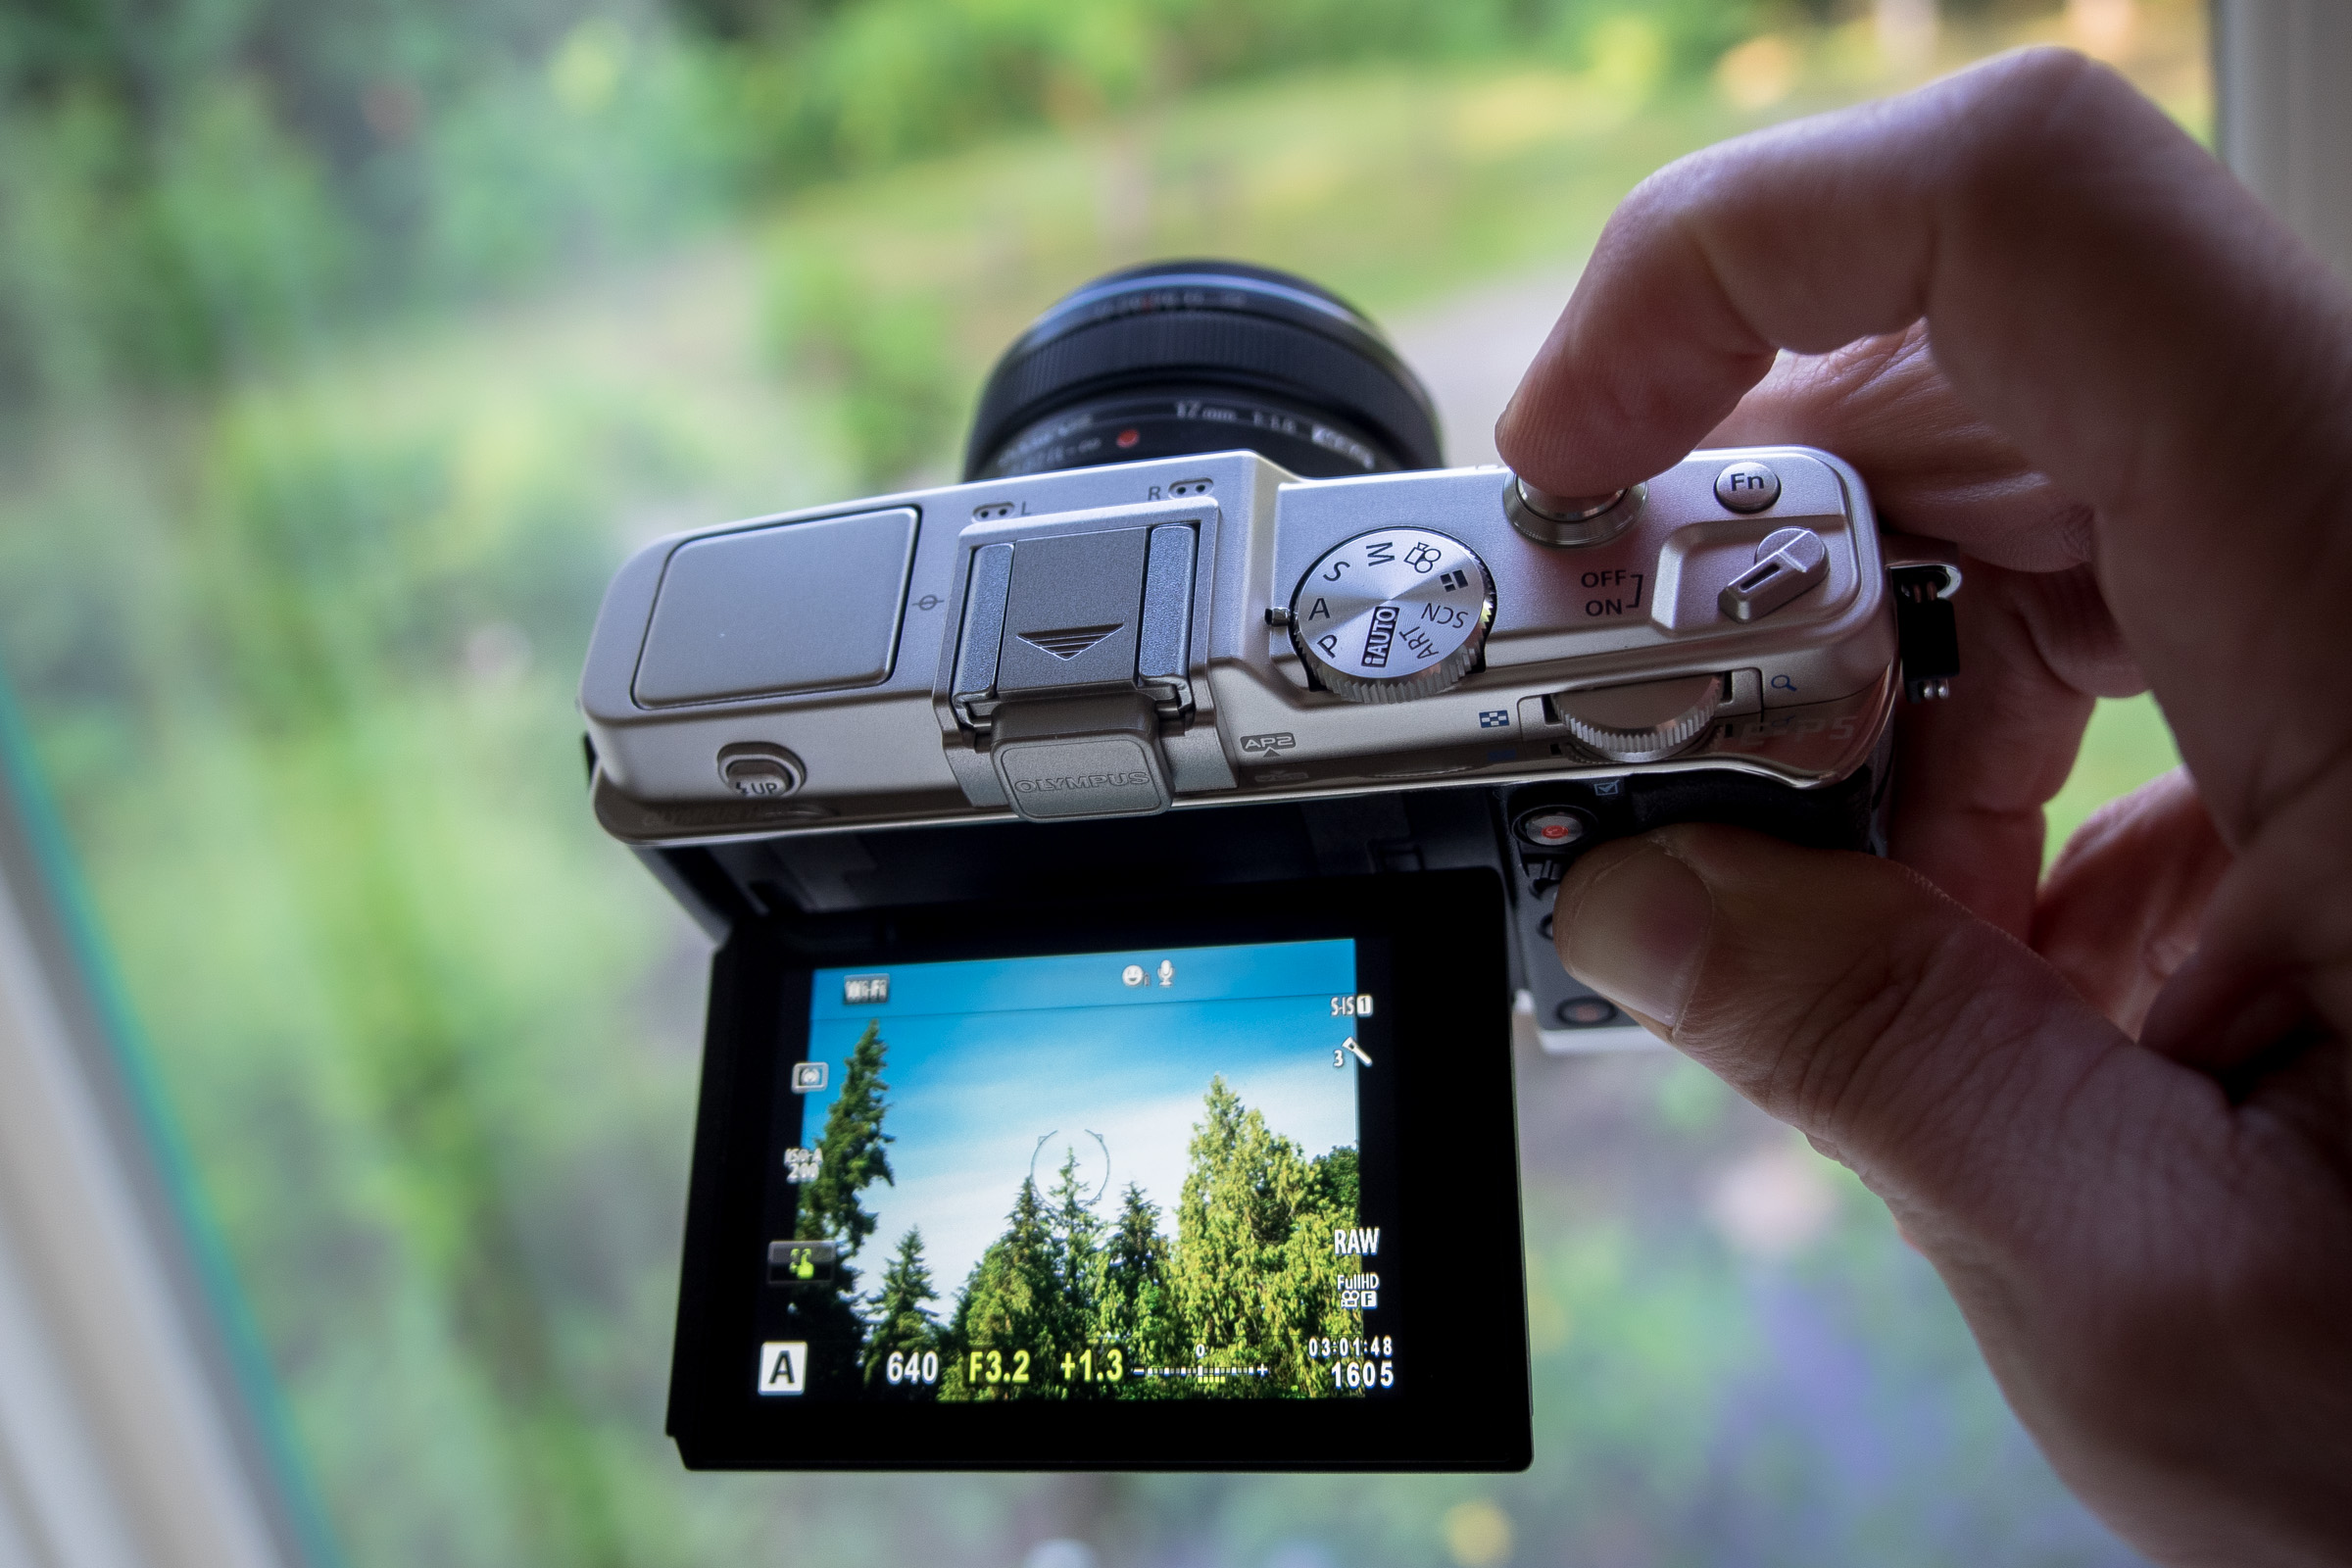 This pocketable camera - an Olympus Pen - has a 16 megapixel sensor, can shoot 8 frames per second at up to 1/8000 second, records professional quality video, and can stream photos directly to a smart phone.